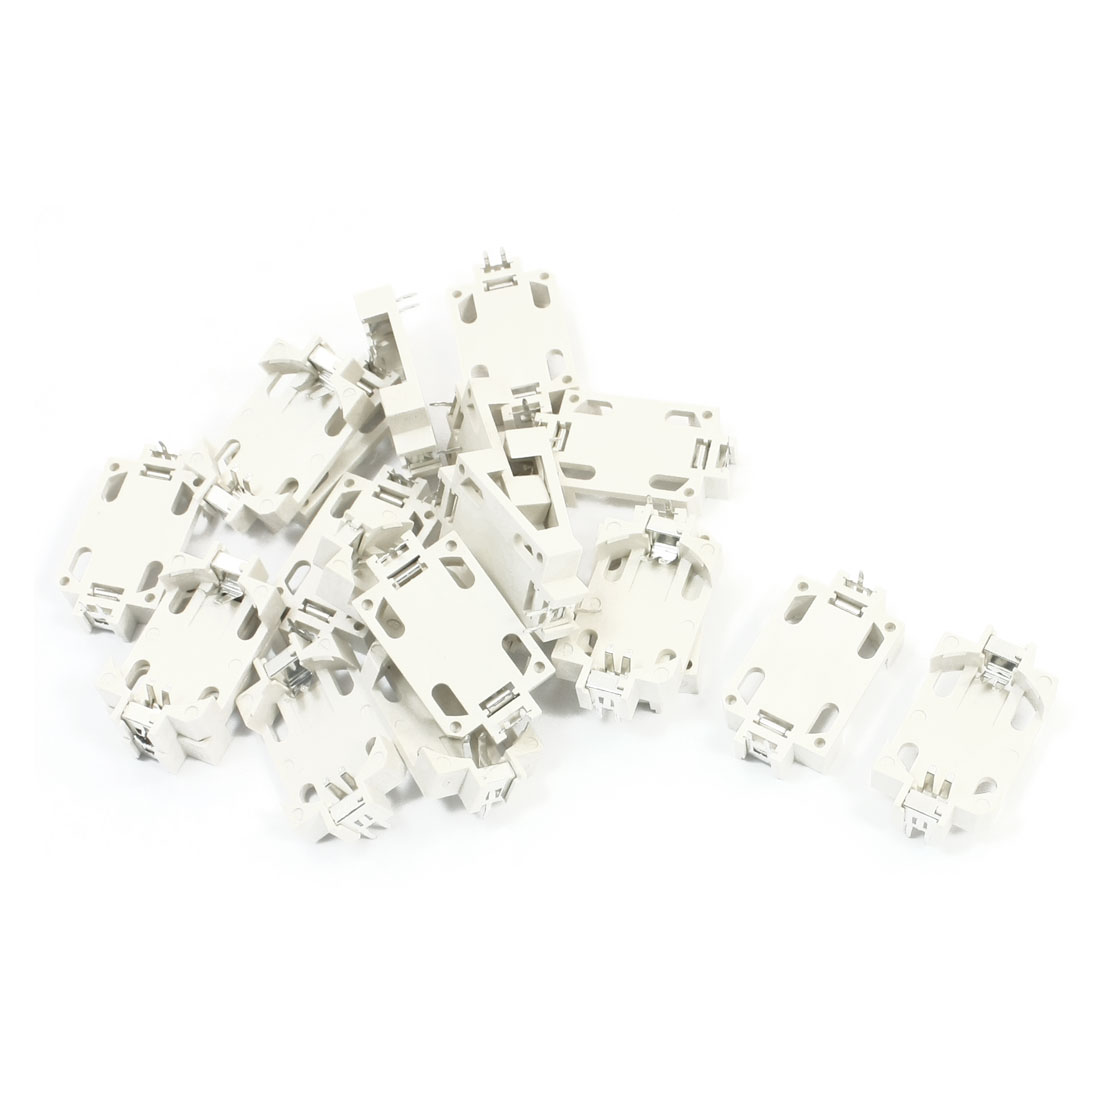 20 Pcs 3 Pins White Plastic Housing DIP Type CR2032 Lithium Cell Button Battery Holder Socket Case